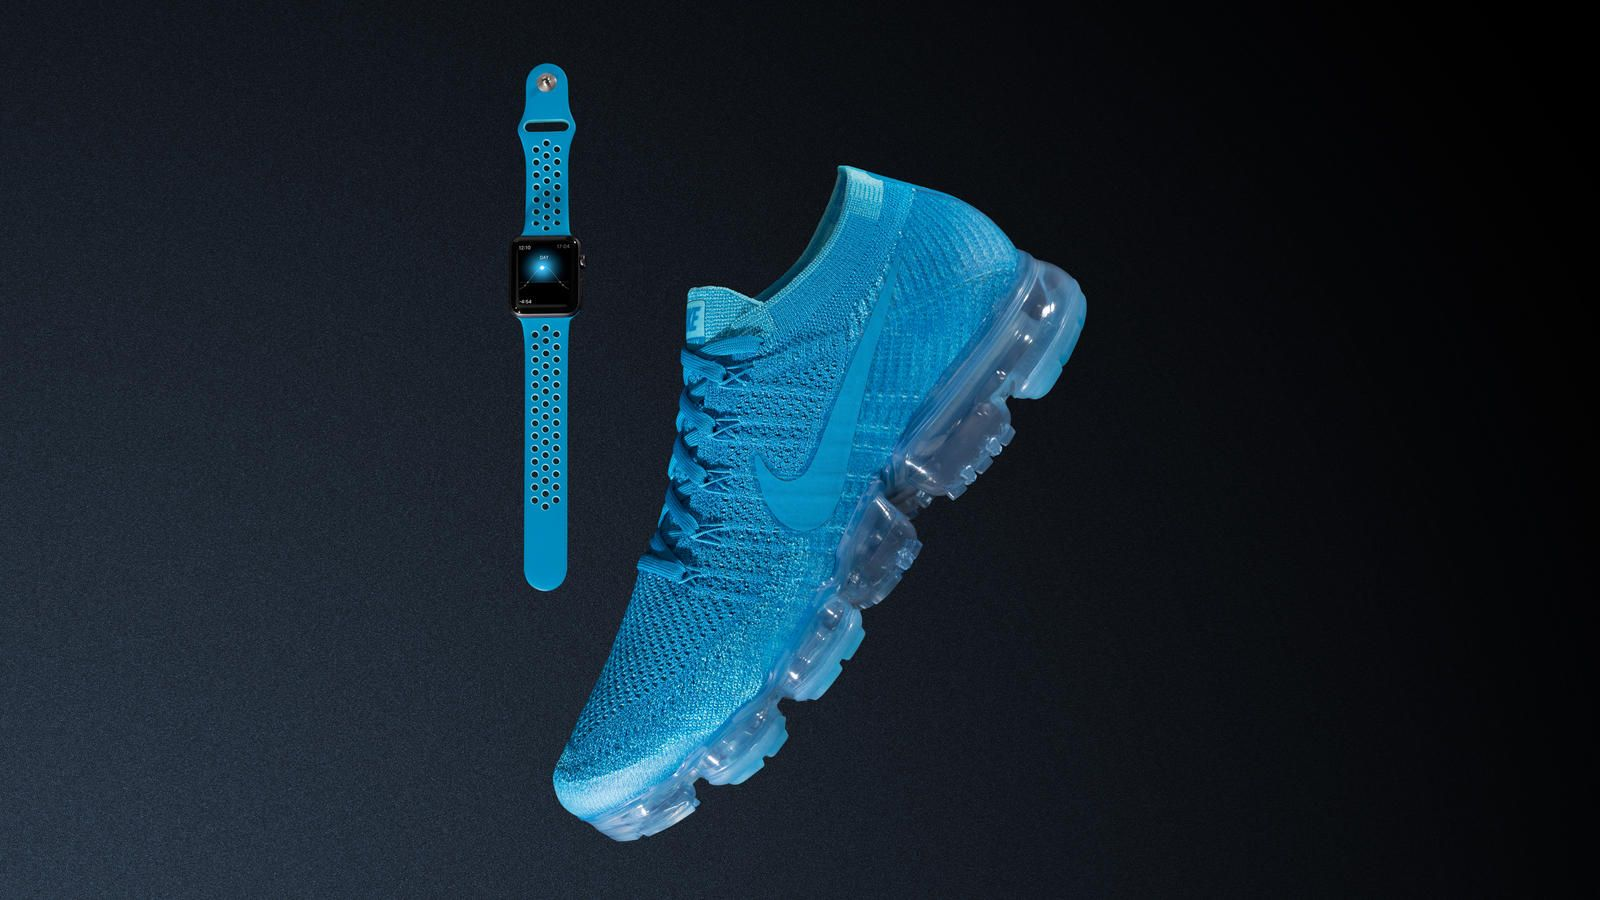 New Nike Sport Bands Go From Day to Night |  watch